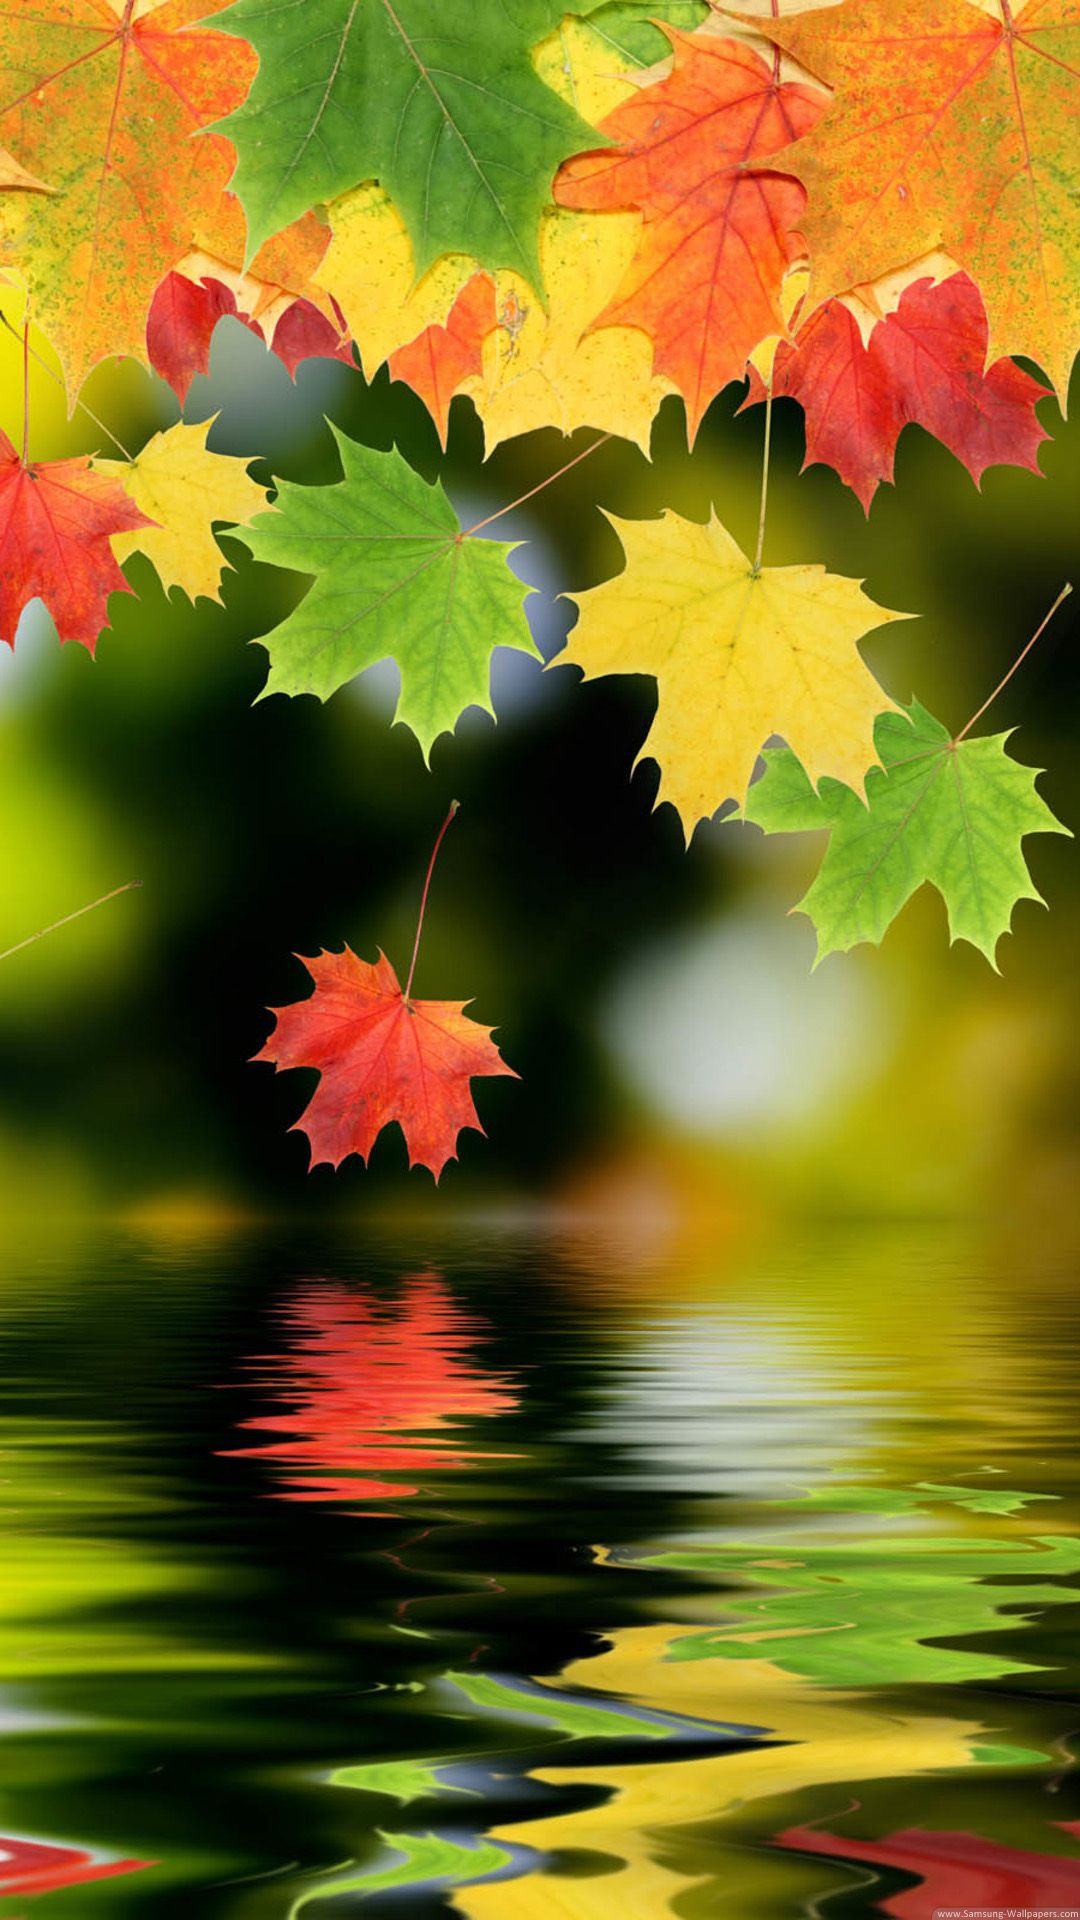 Colorful Autumn Maple Leafs Iphone Hd Wallpaper 秋の壁紙